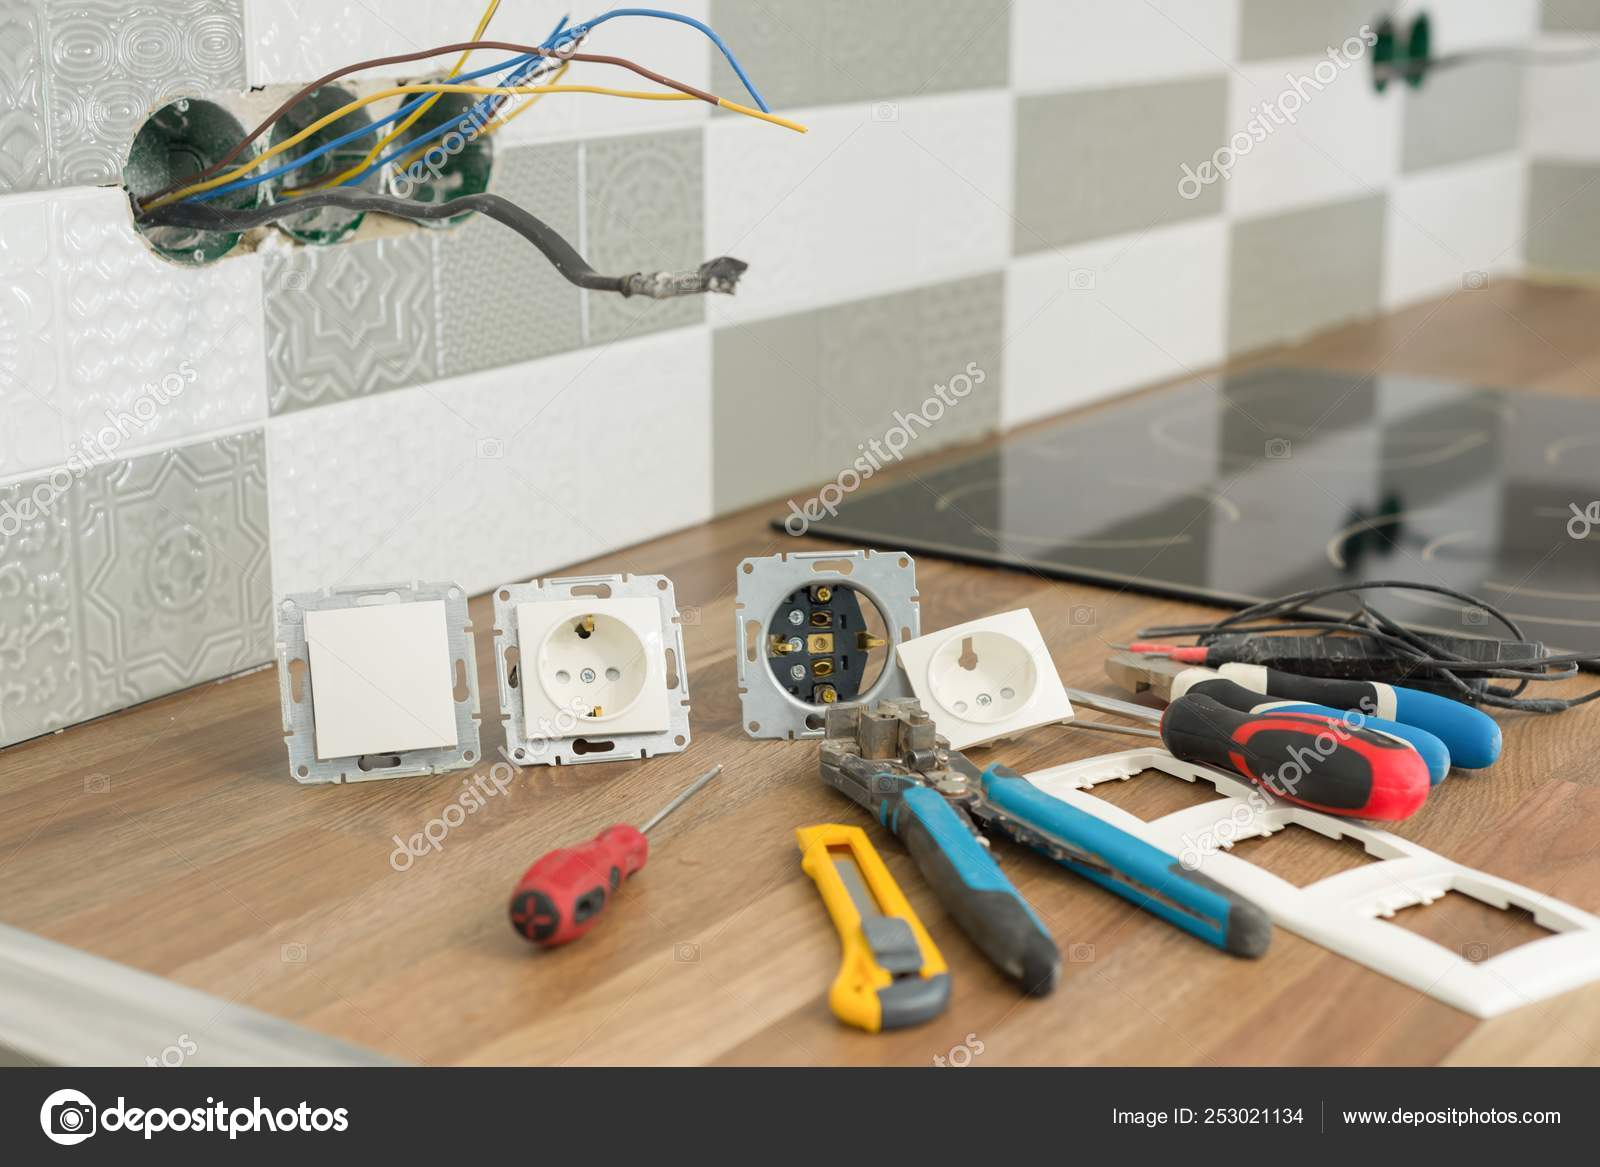 Install Electrical Outlet >> Preparing To Install An Electrical Outlet Closeup Of